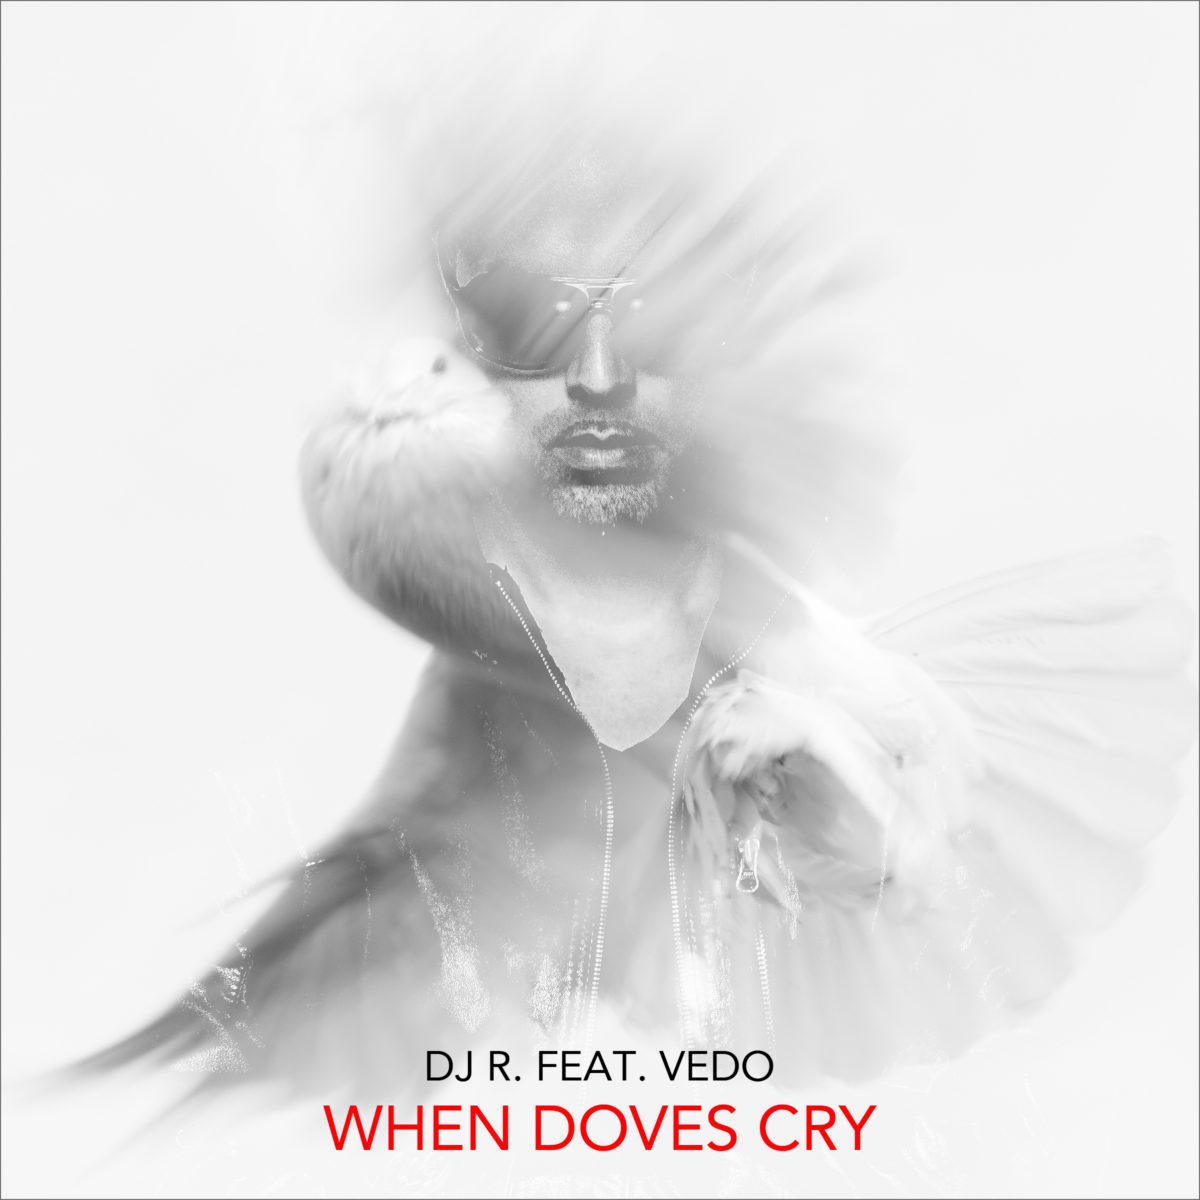 DJ R. feat. Vedo - When Doves Cry